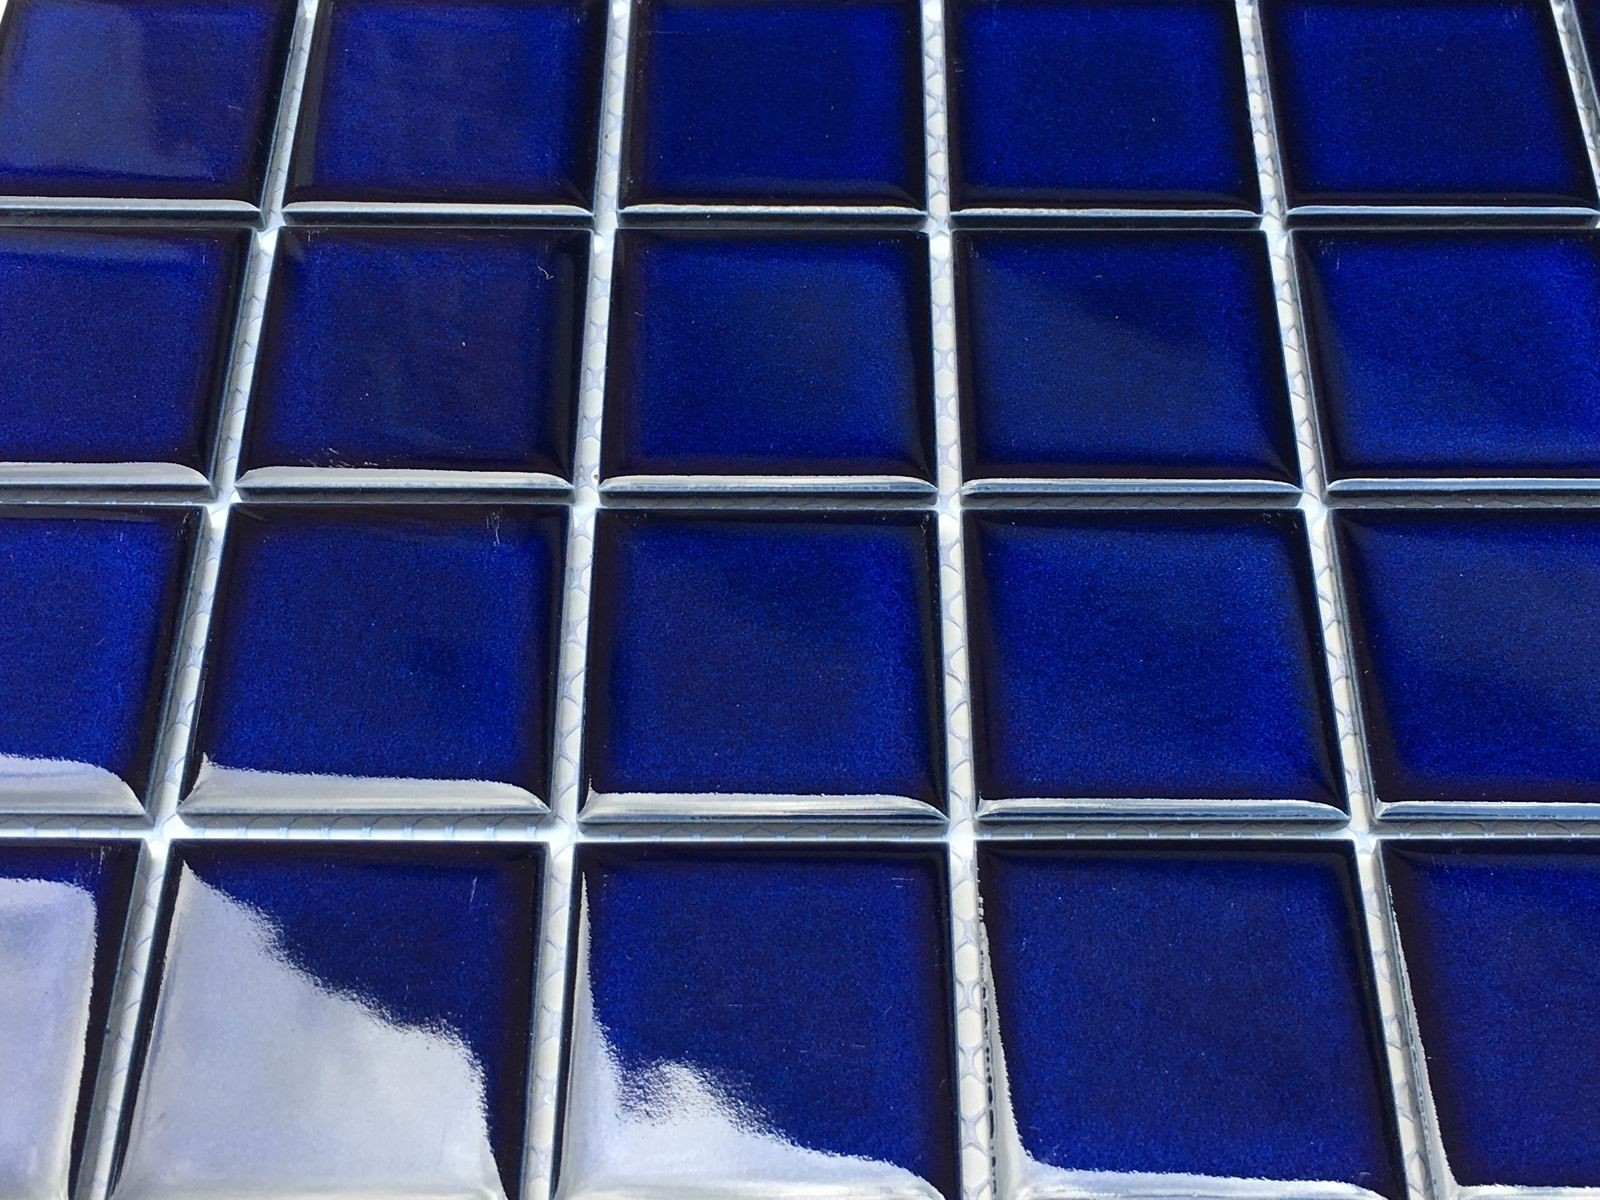 2x2 Cobalt Blue Shiny Porcelain Mosaic Tile For Pools Walls Floor And Backsplash